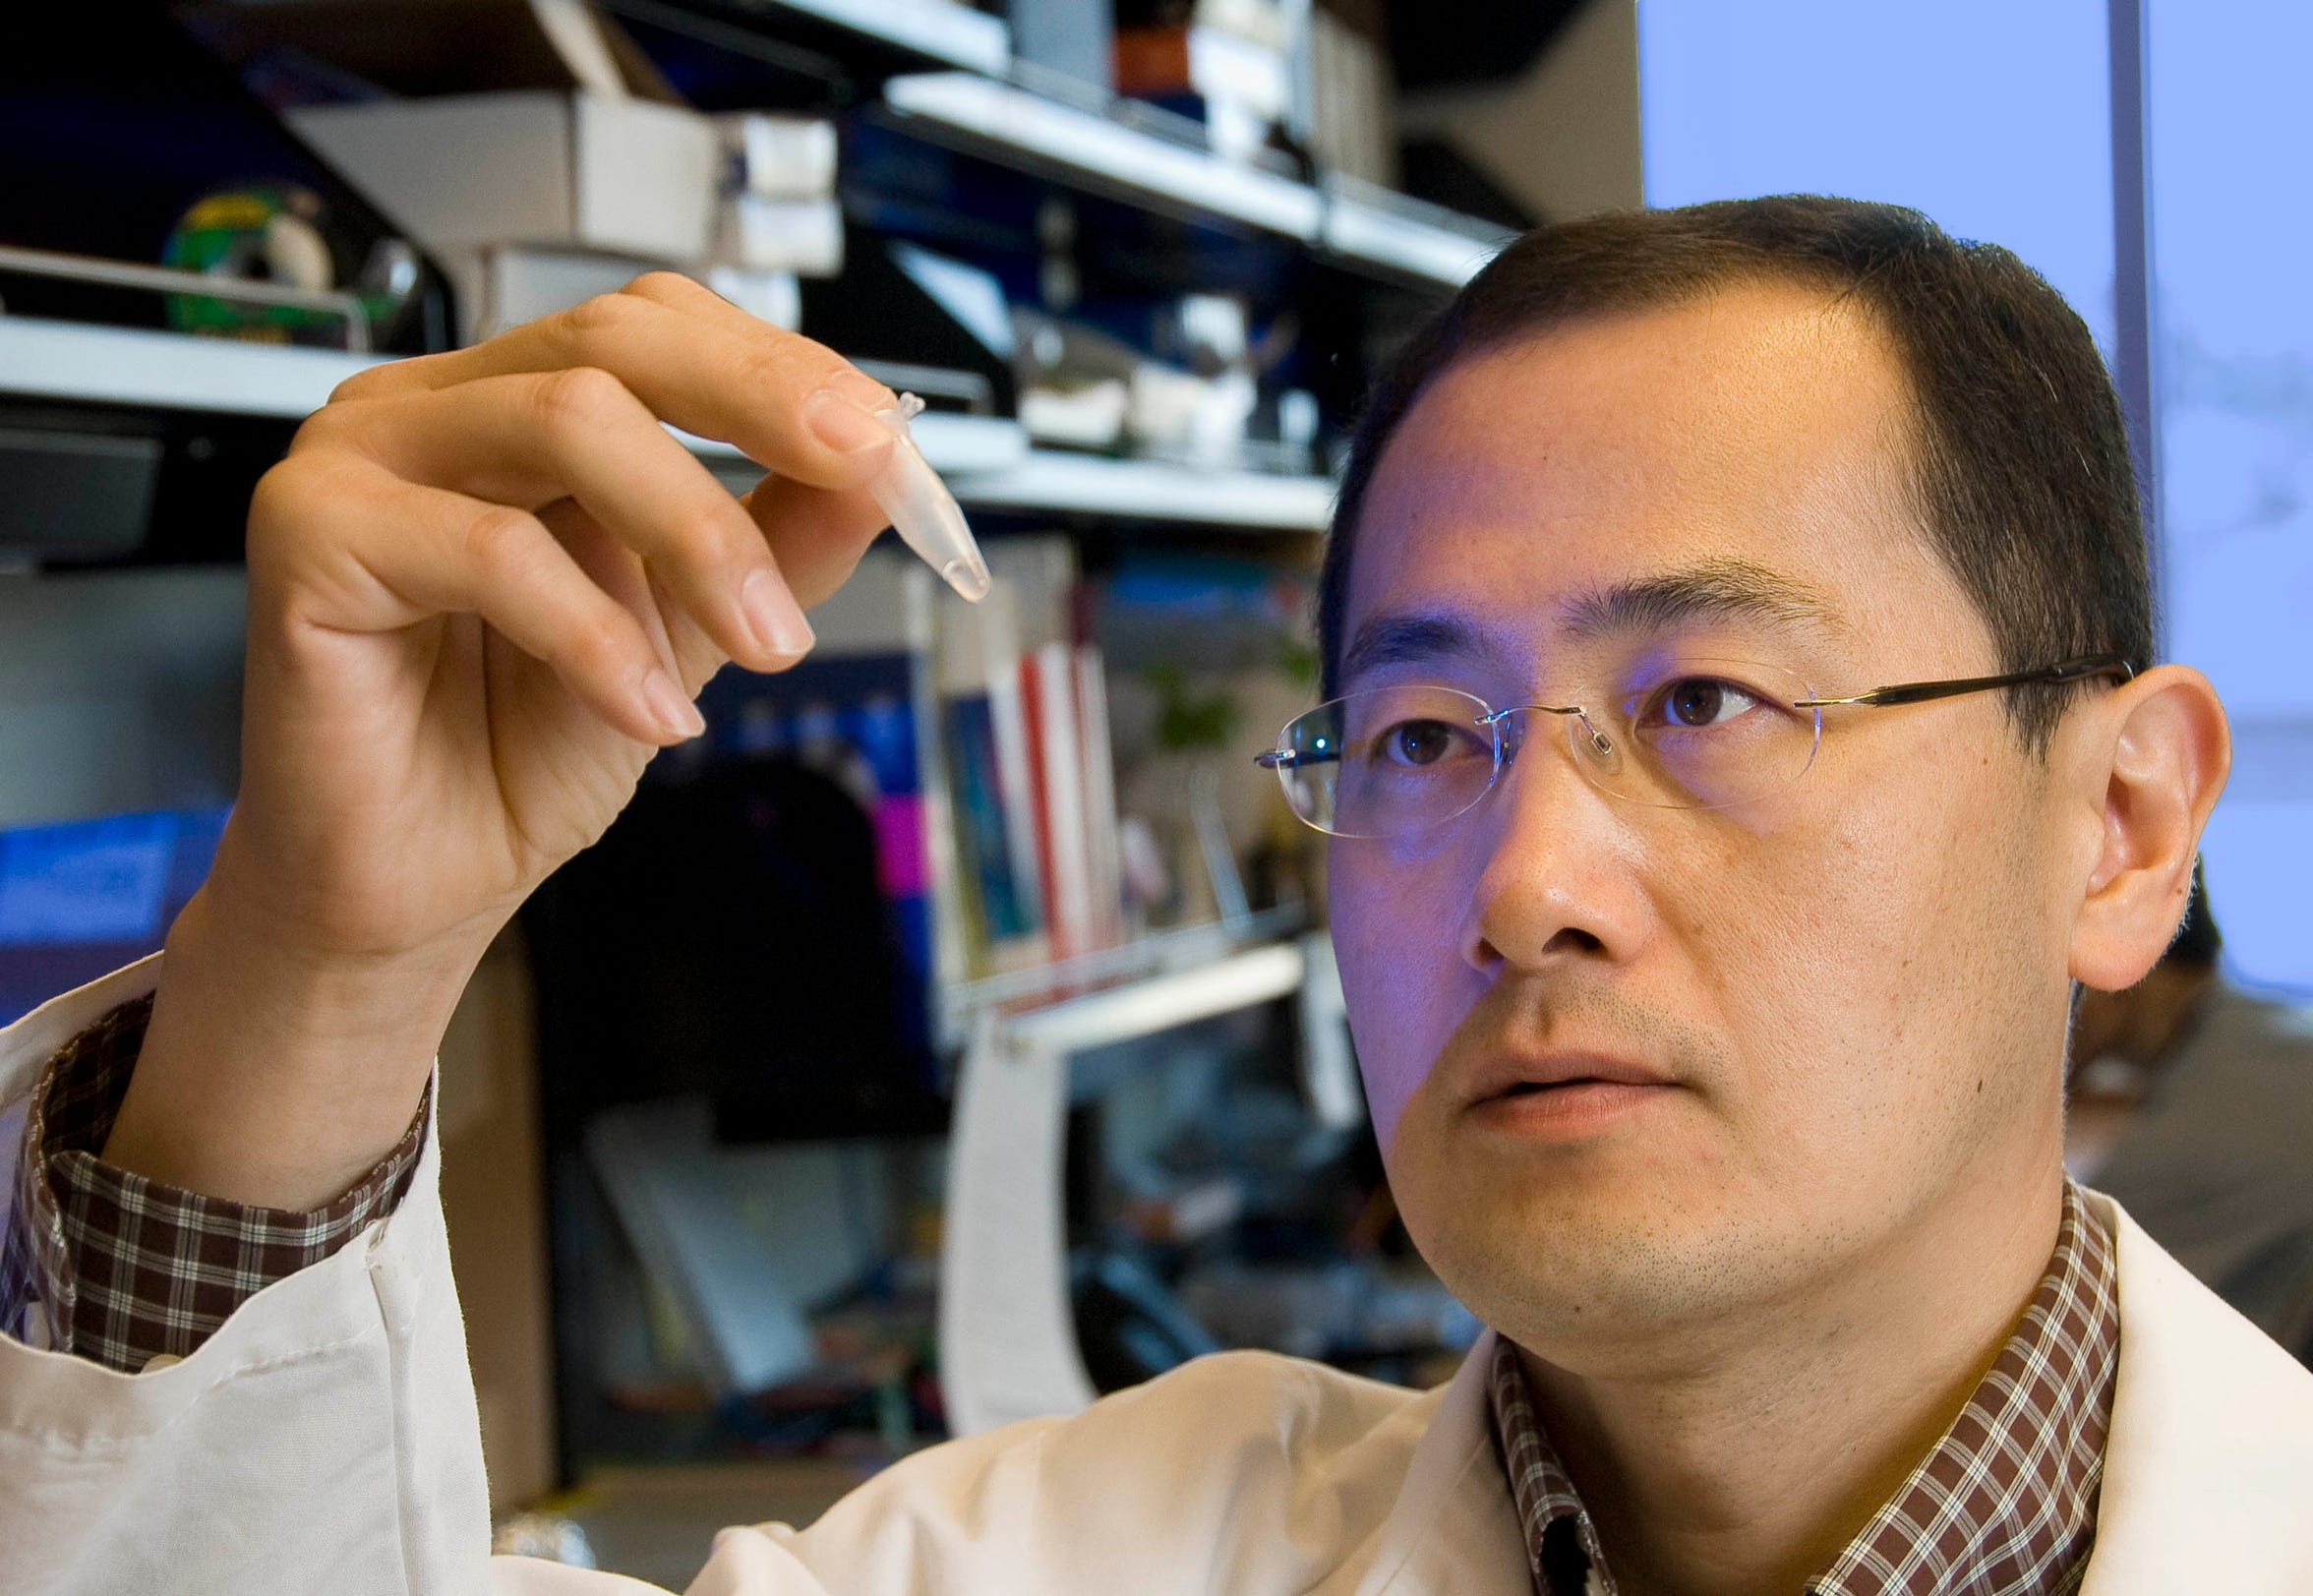 Shinya Yamanaka researches human stem cells at the Gladstone Institutes in San Francisco in 2008. He made the breakthrough discovery that a set of four factors can reprogram mature adult cells into pluripotent stem cells. He and Dr. James Thompson of the University of Wisconsin are the first two scientists to develop human stem cells without using embryos. (Photo: Gladstone Institutes)